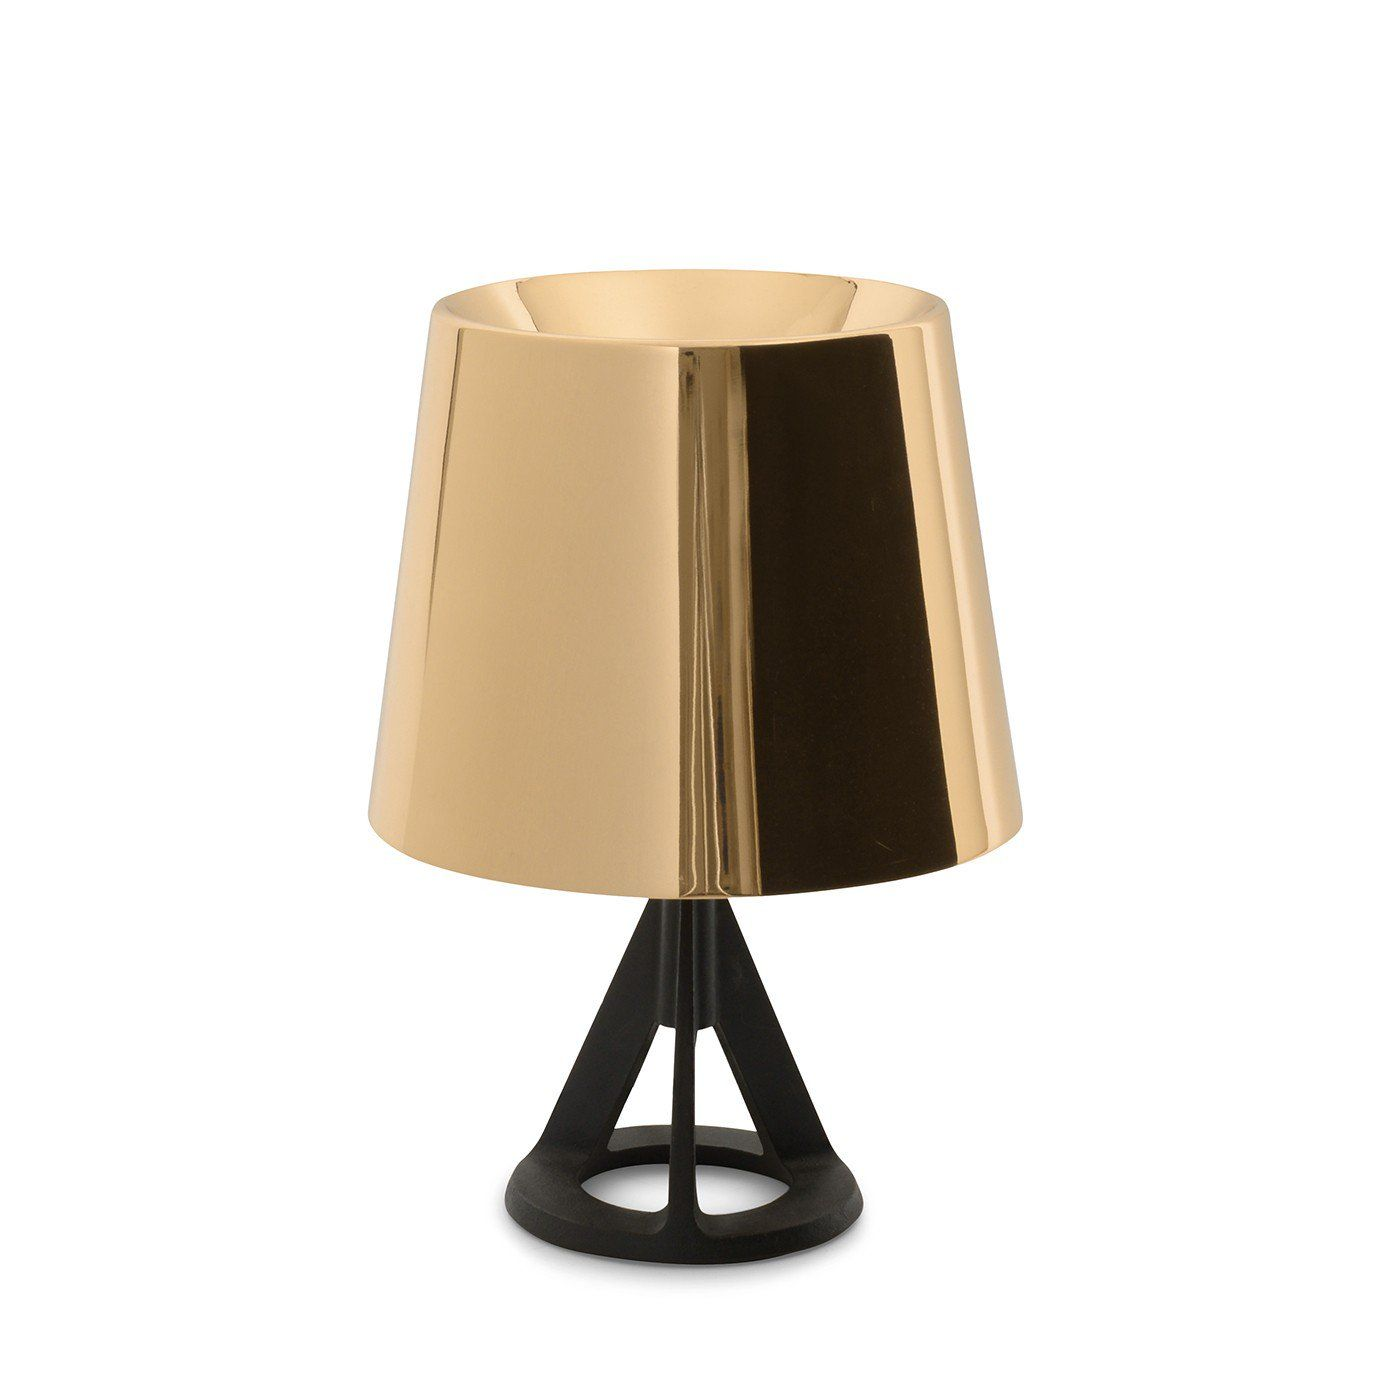 Base Table Lamp Discontinued Modern Lighting Design Lamp Contemporary Lighting